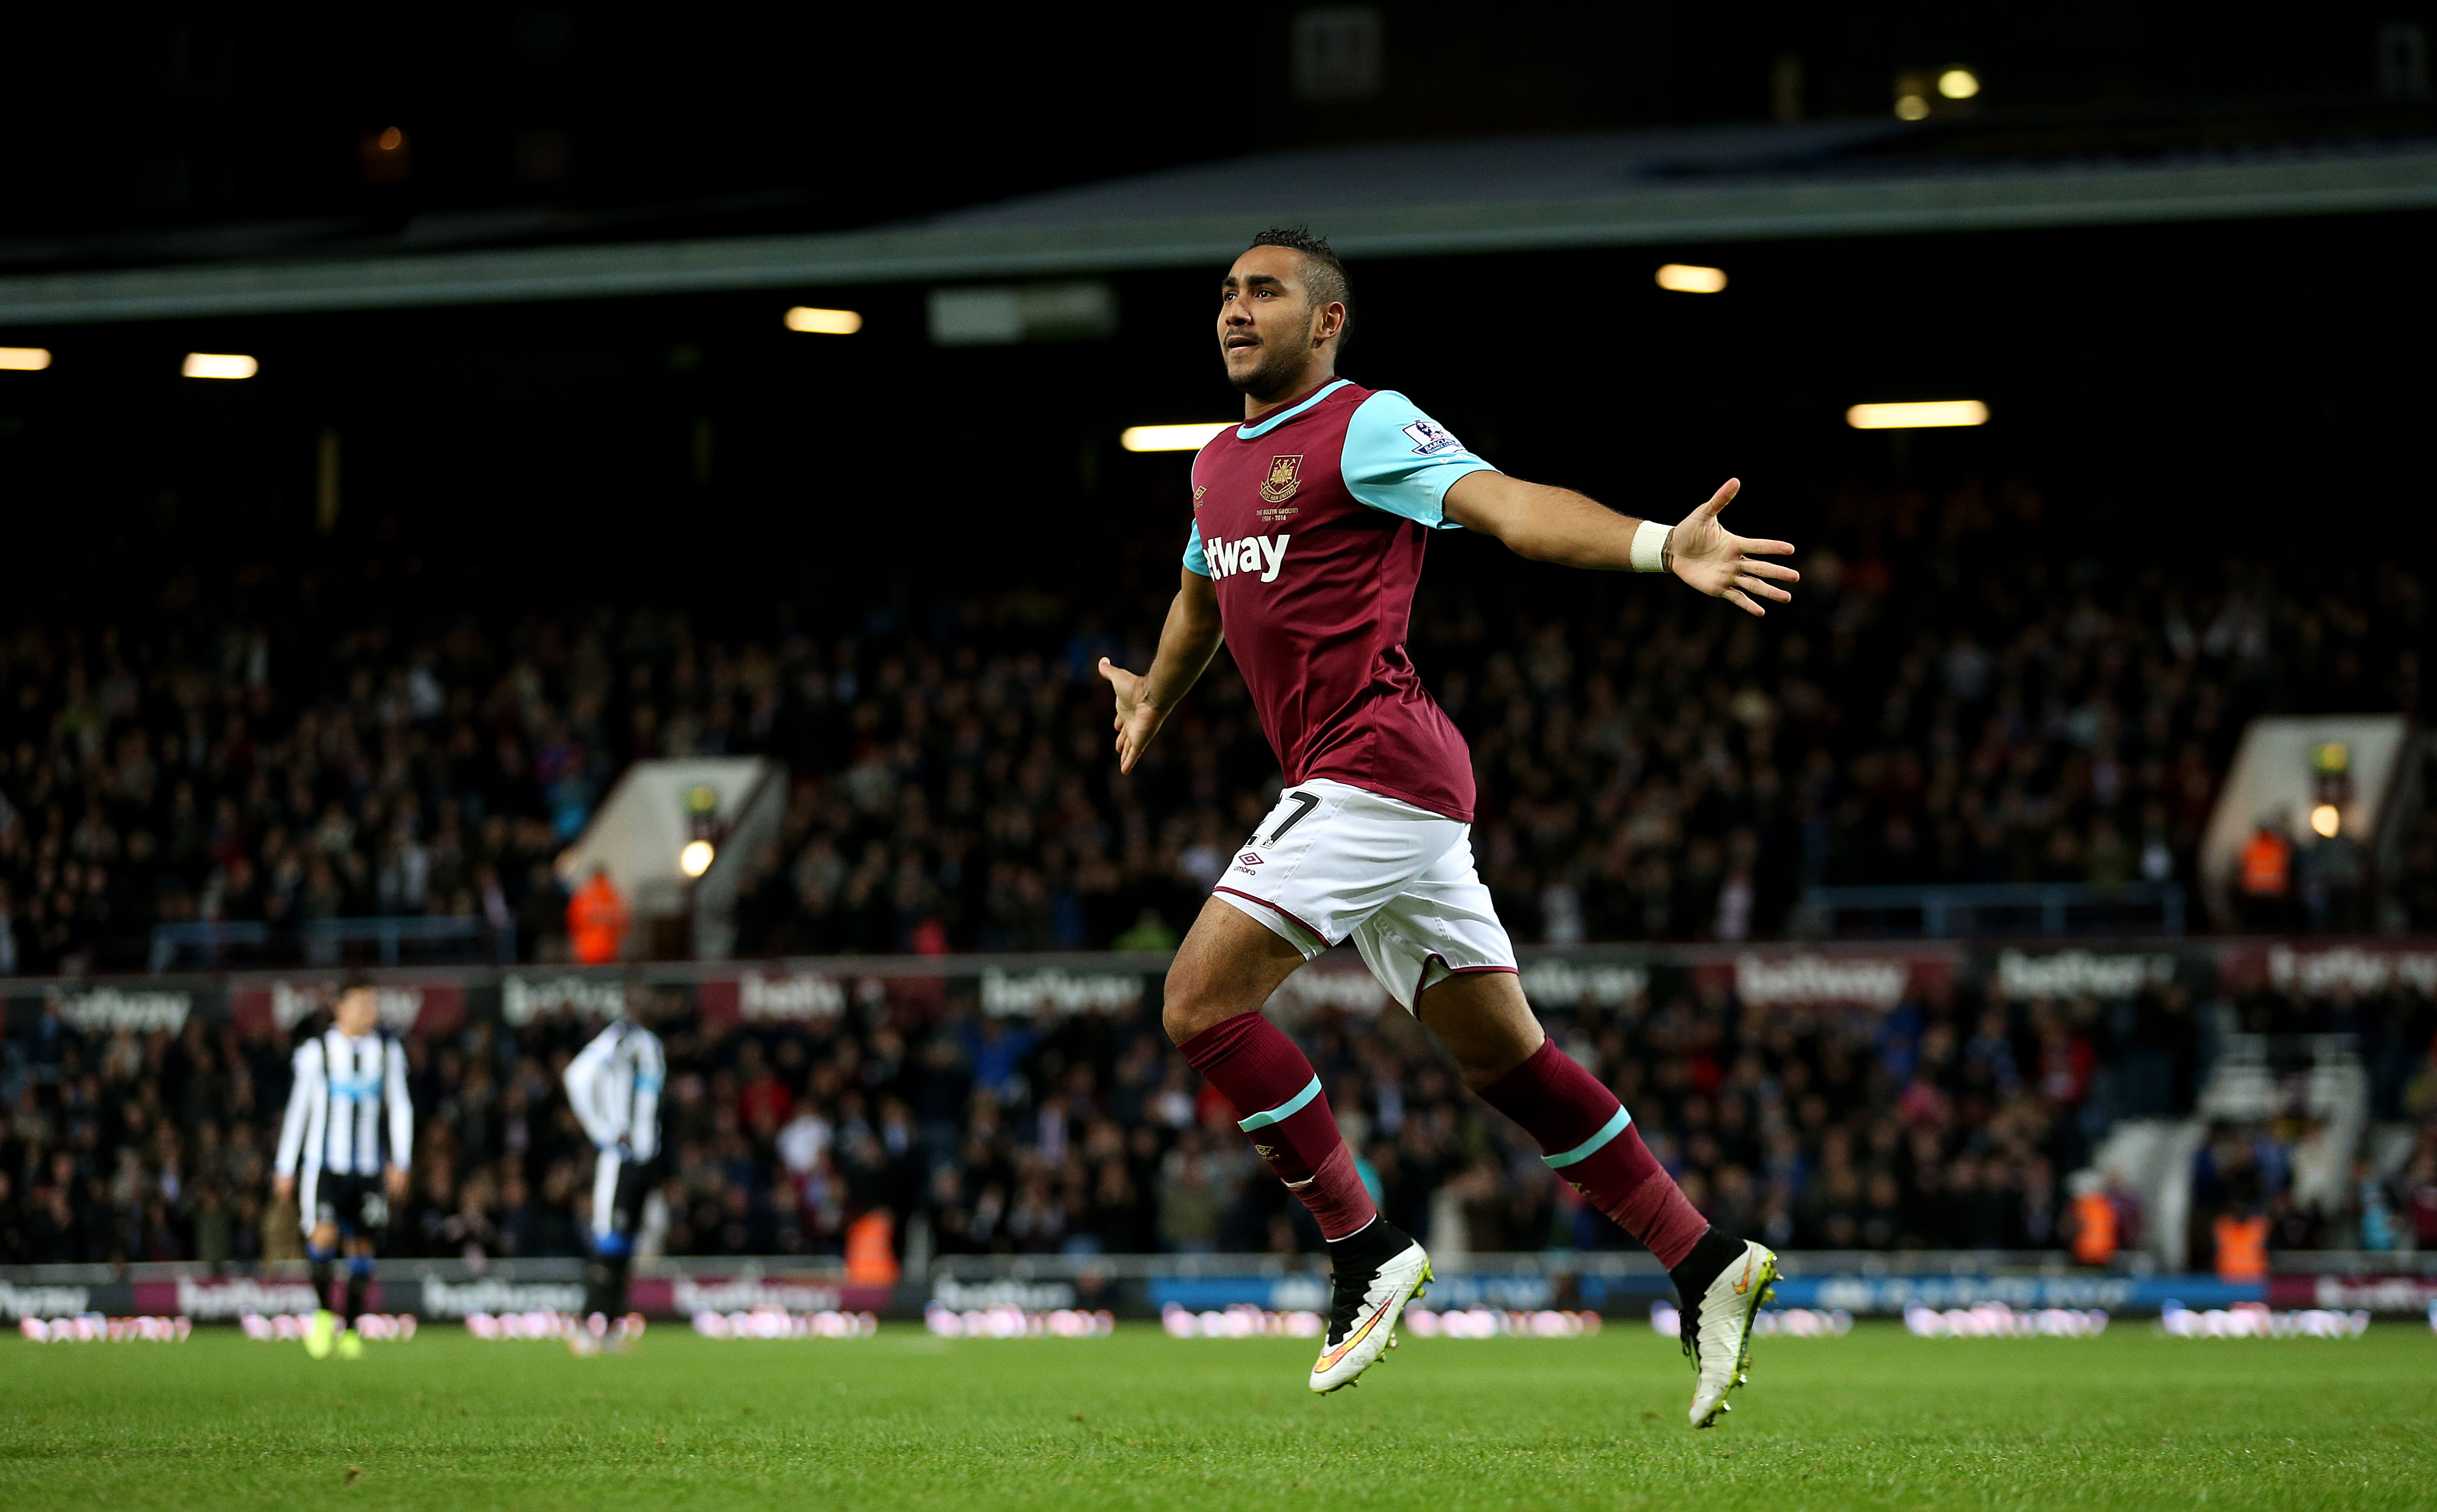 Soccer - Barclays Premier League - West Ham United v Newcastle United - Upton Park